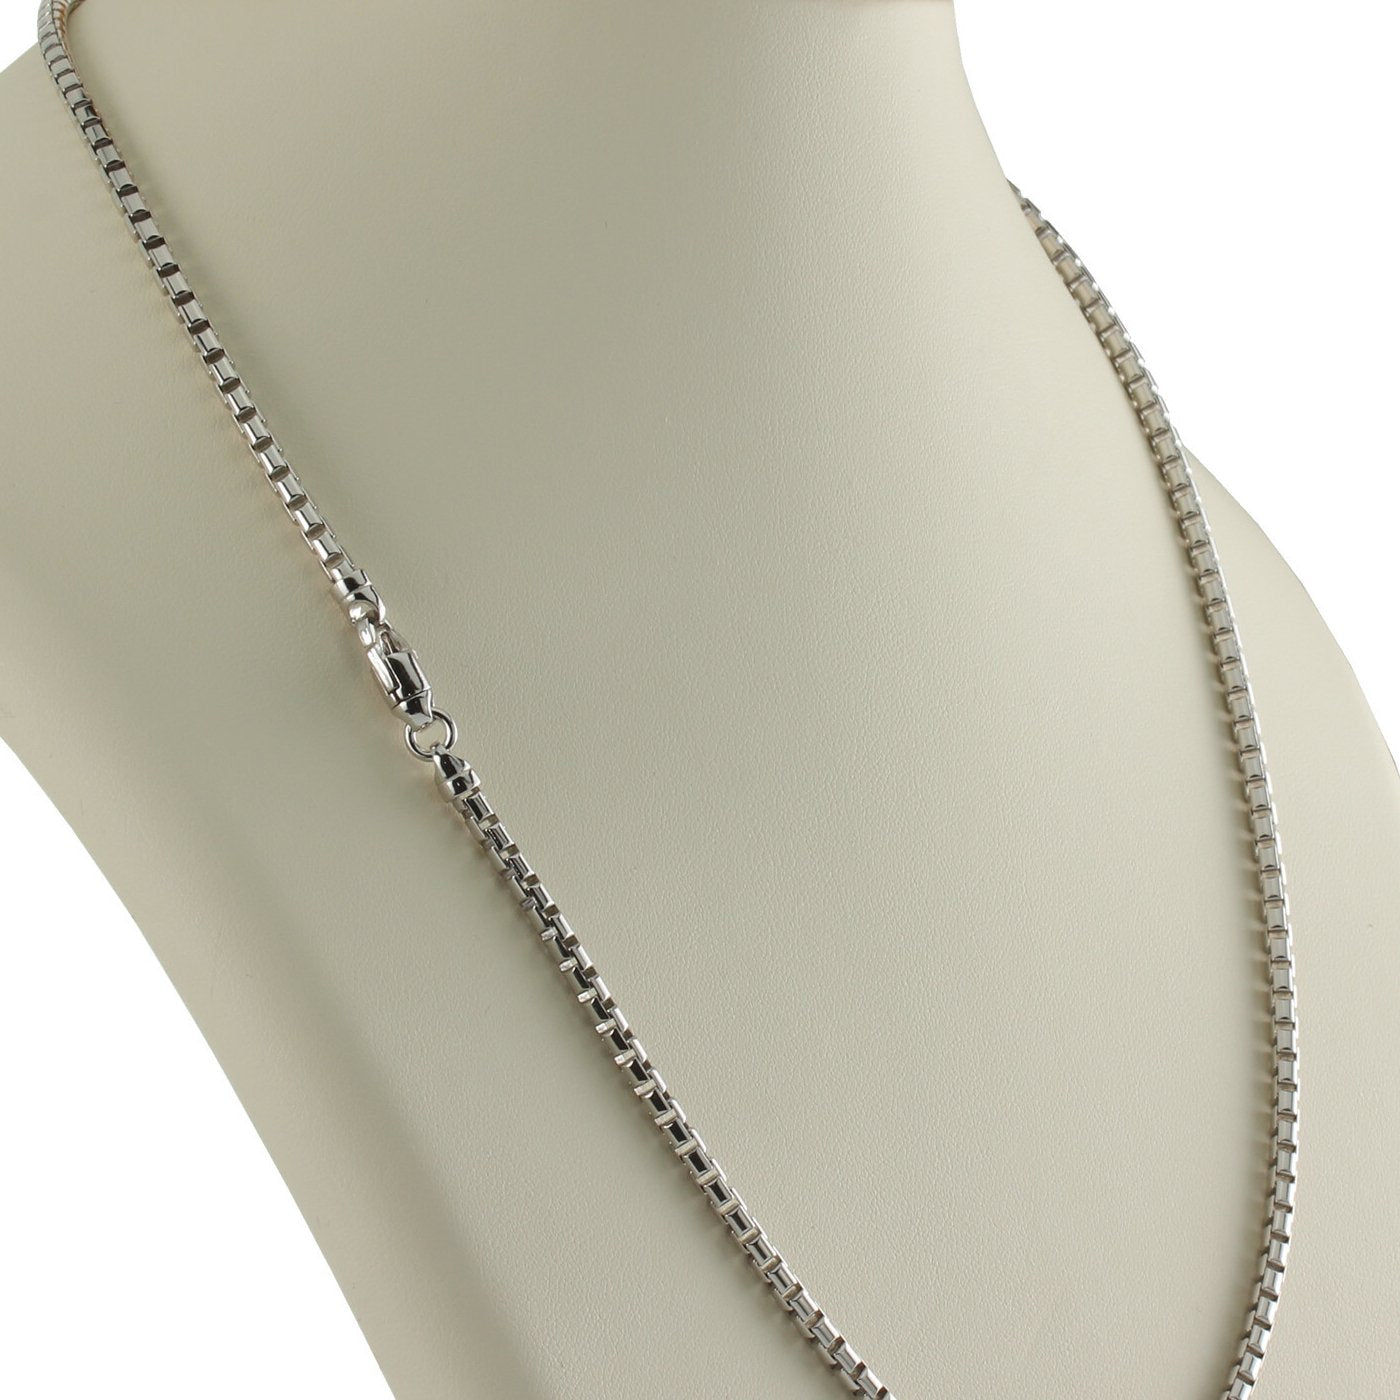 "9MM Round Box Chain .925 Solid Sterling Silver Sizes ""16-24"" Inch"